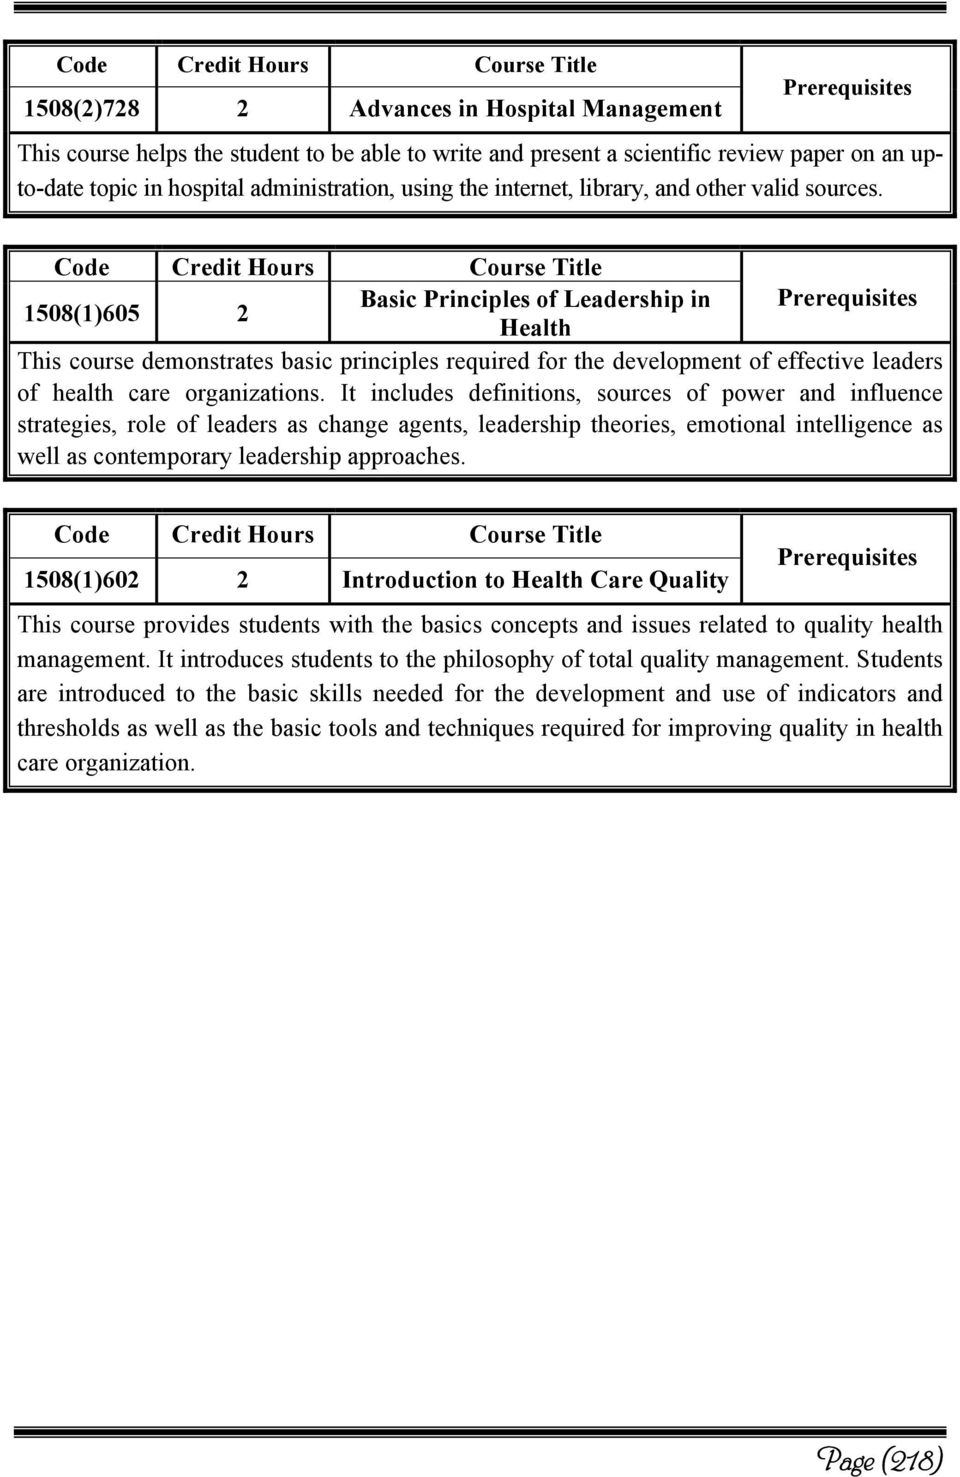 1508(1)605 2 Basic Principles of Leadership in Health This course demonstrates basic principles required for the development of effective leaders of health care organizations.